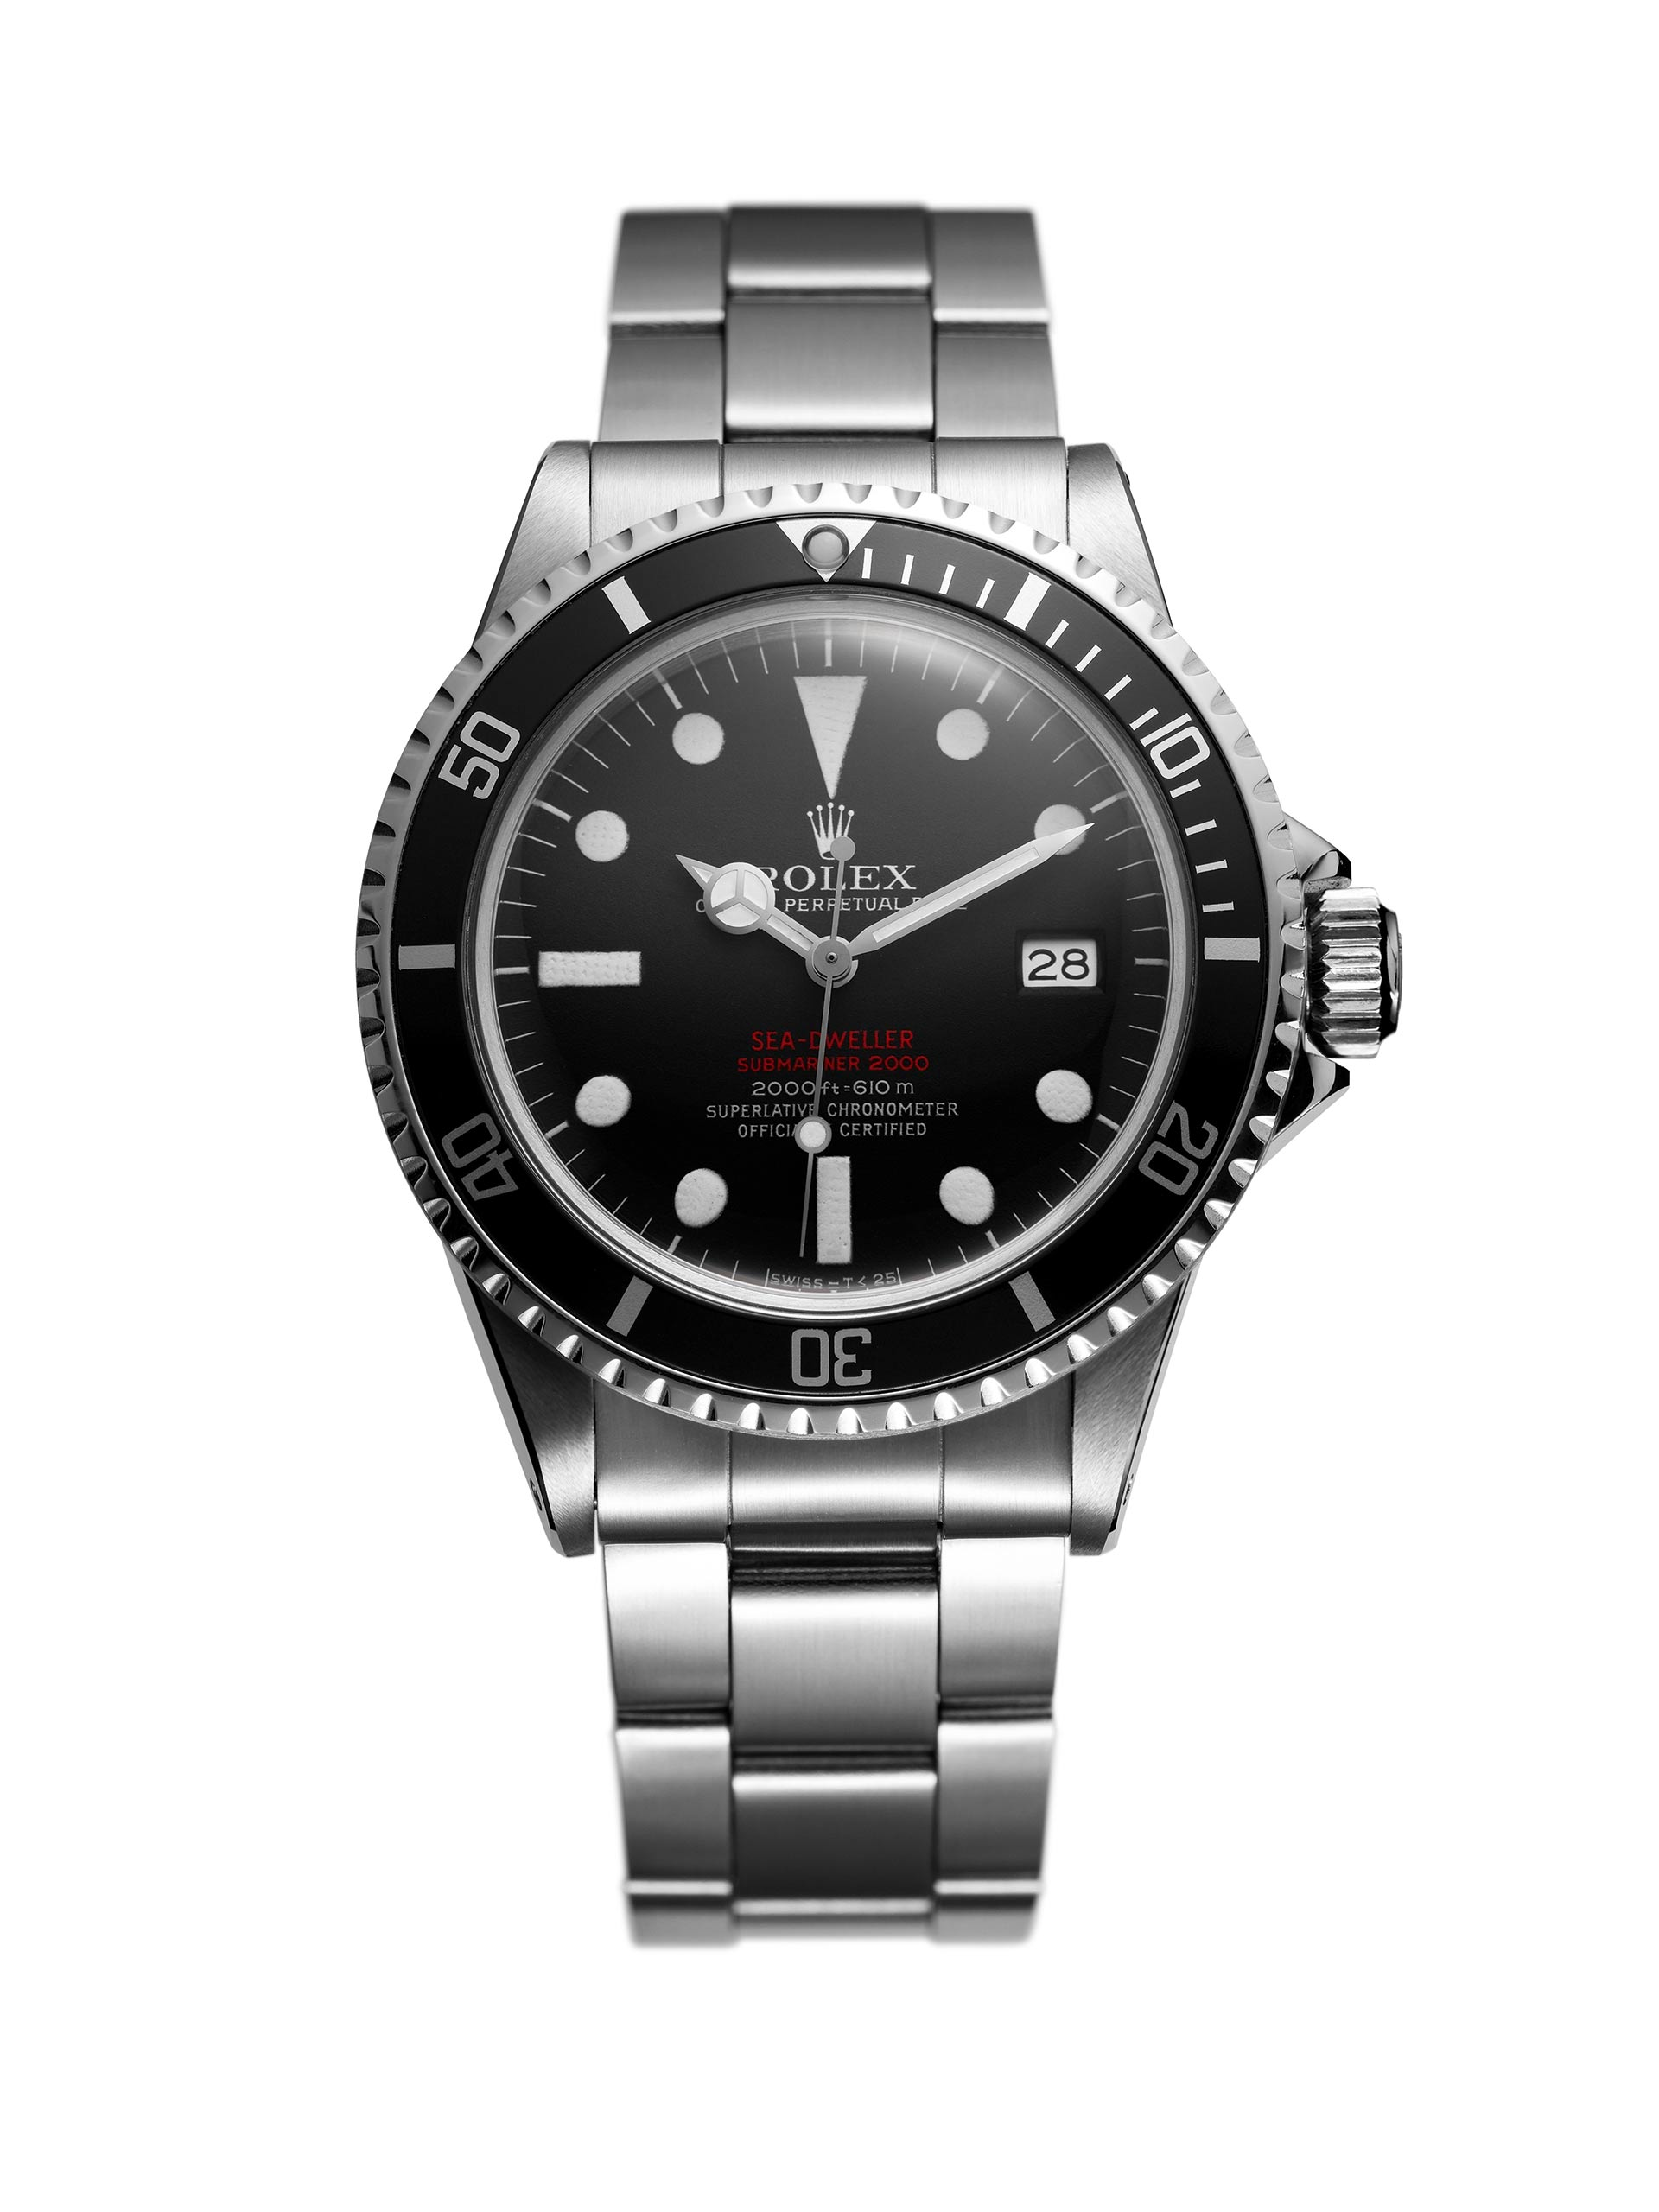 First_Sea-Dweller_1967